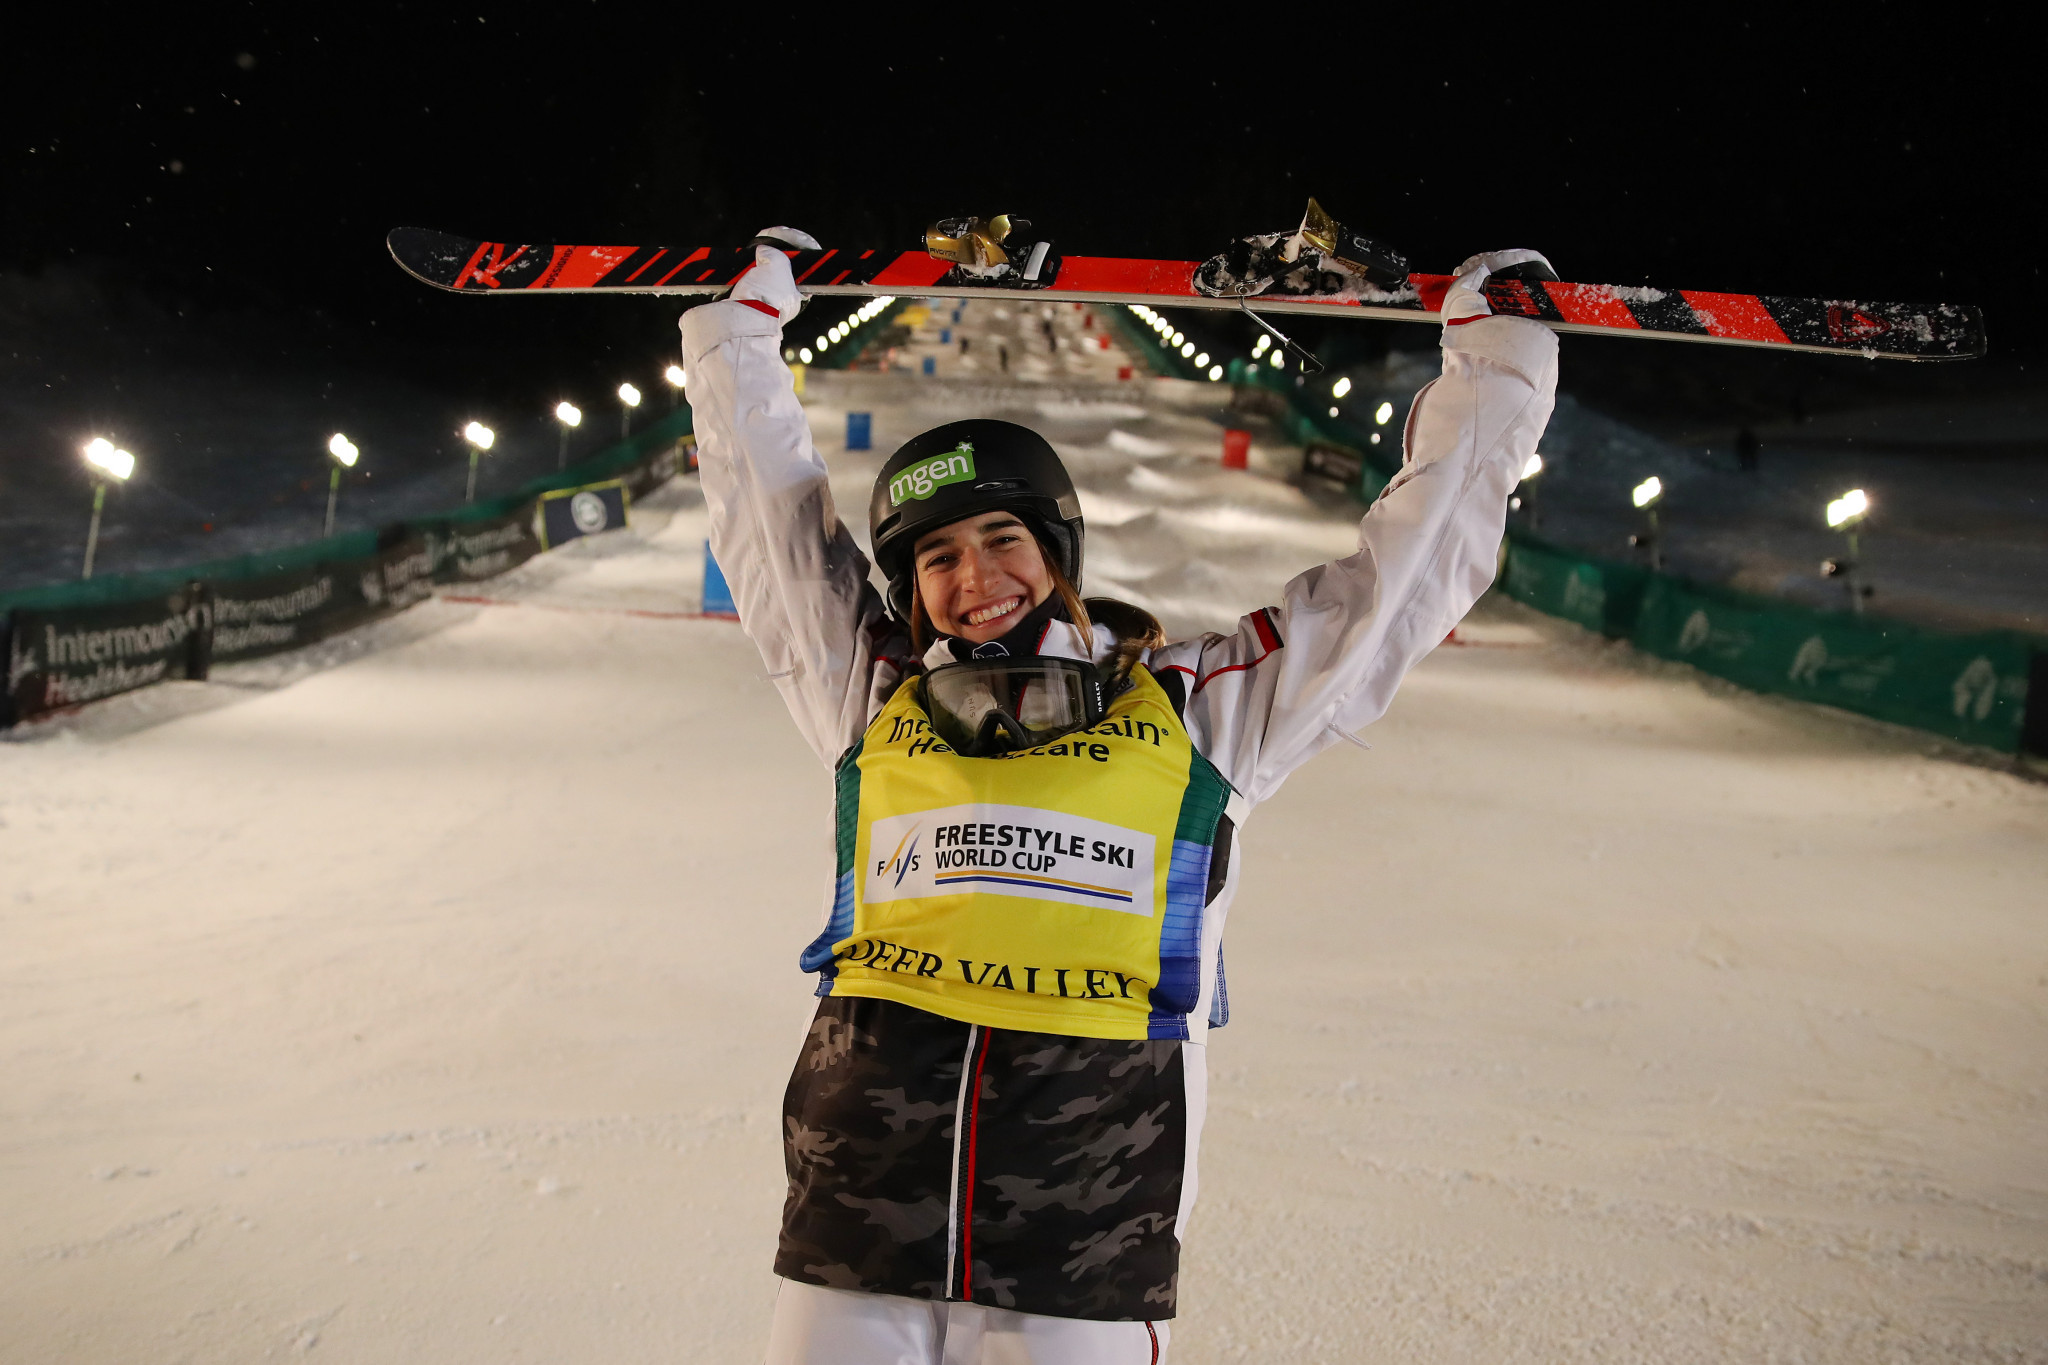 Laffont continues Moguls World Cup winning streak as she triumphs in sixth straight event